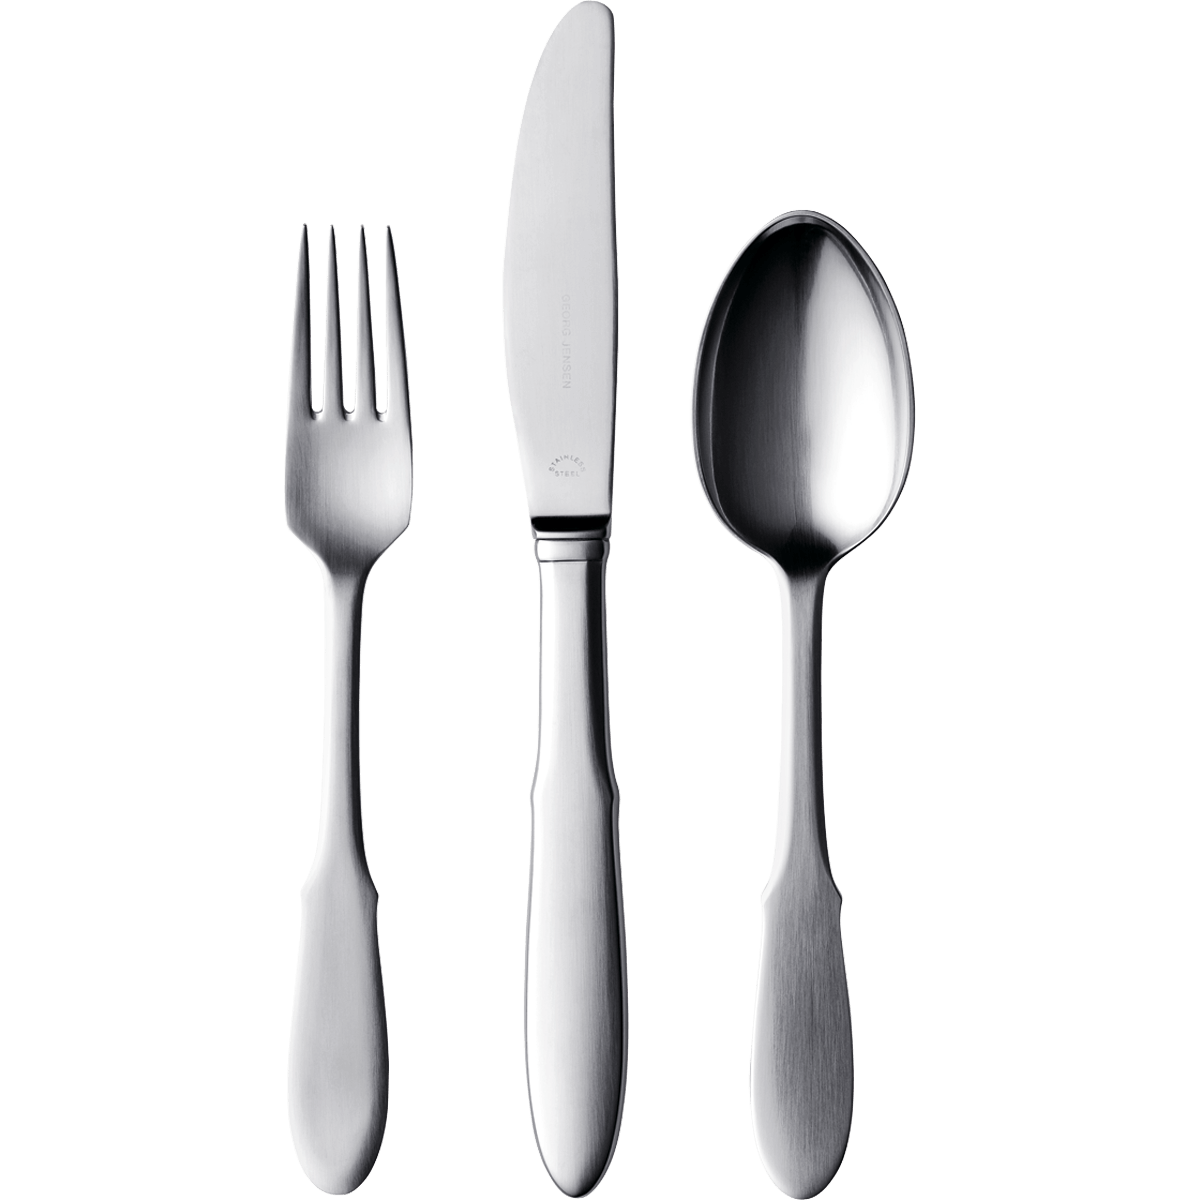 Knife Fork Spoon transparent PNG.